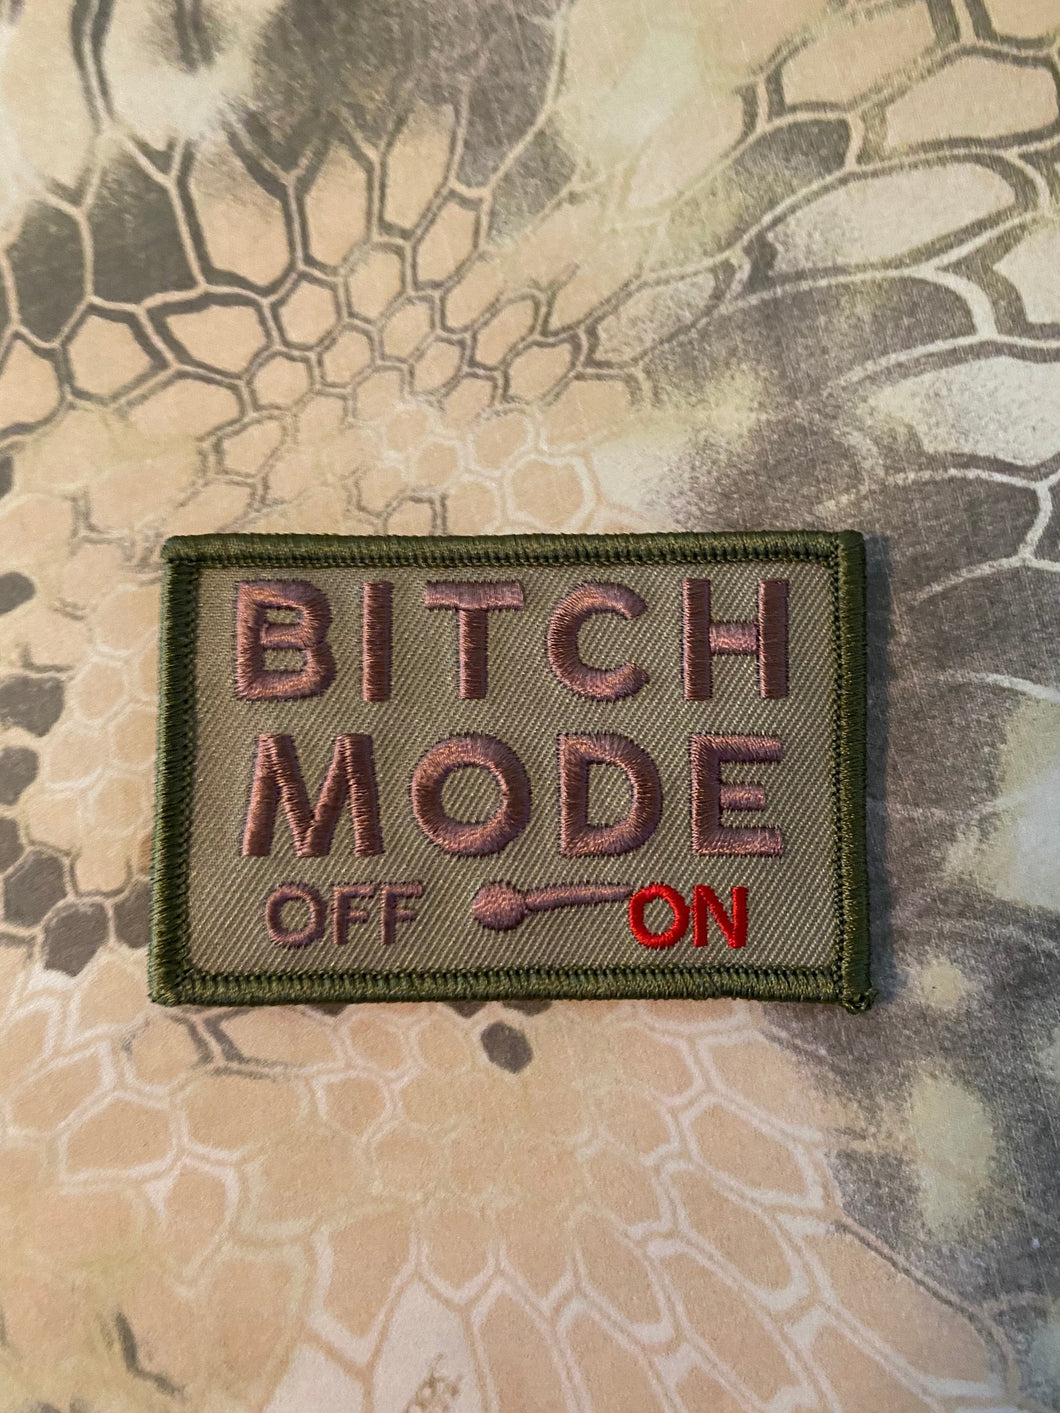 bitch mode on off meter funny morale 3x2